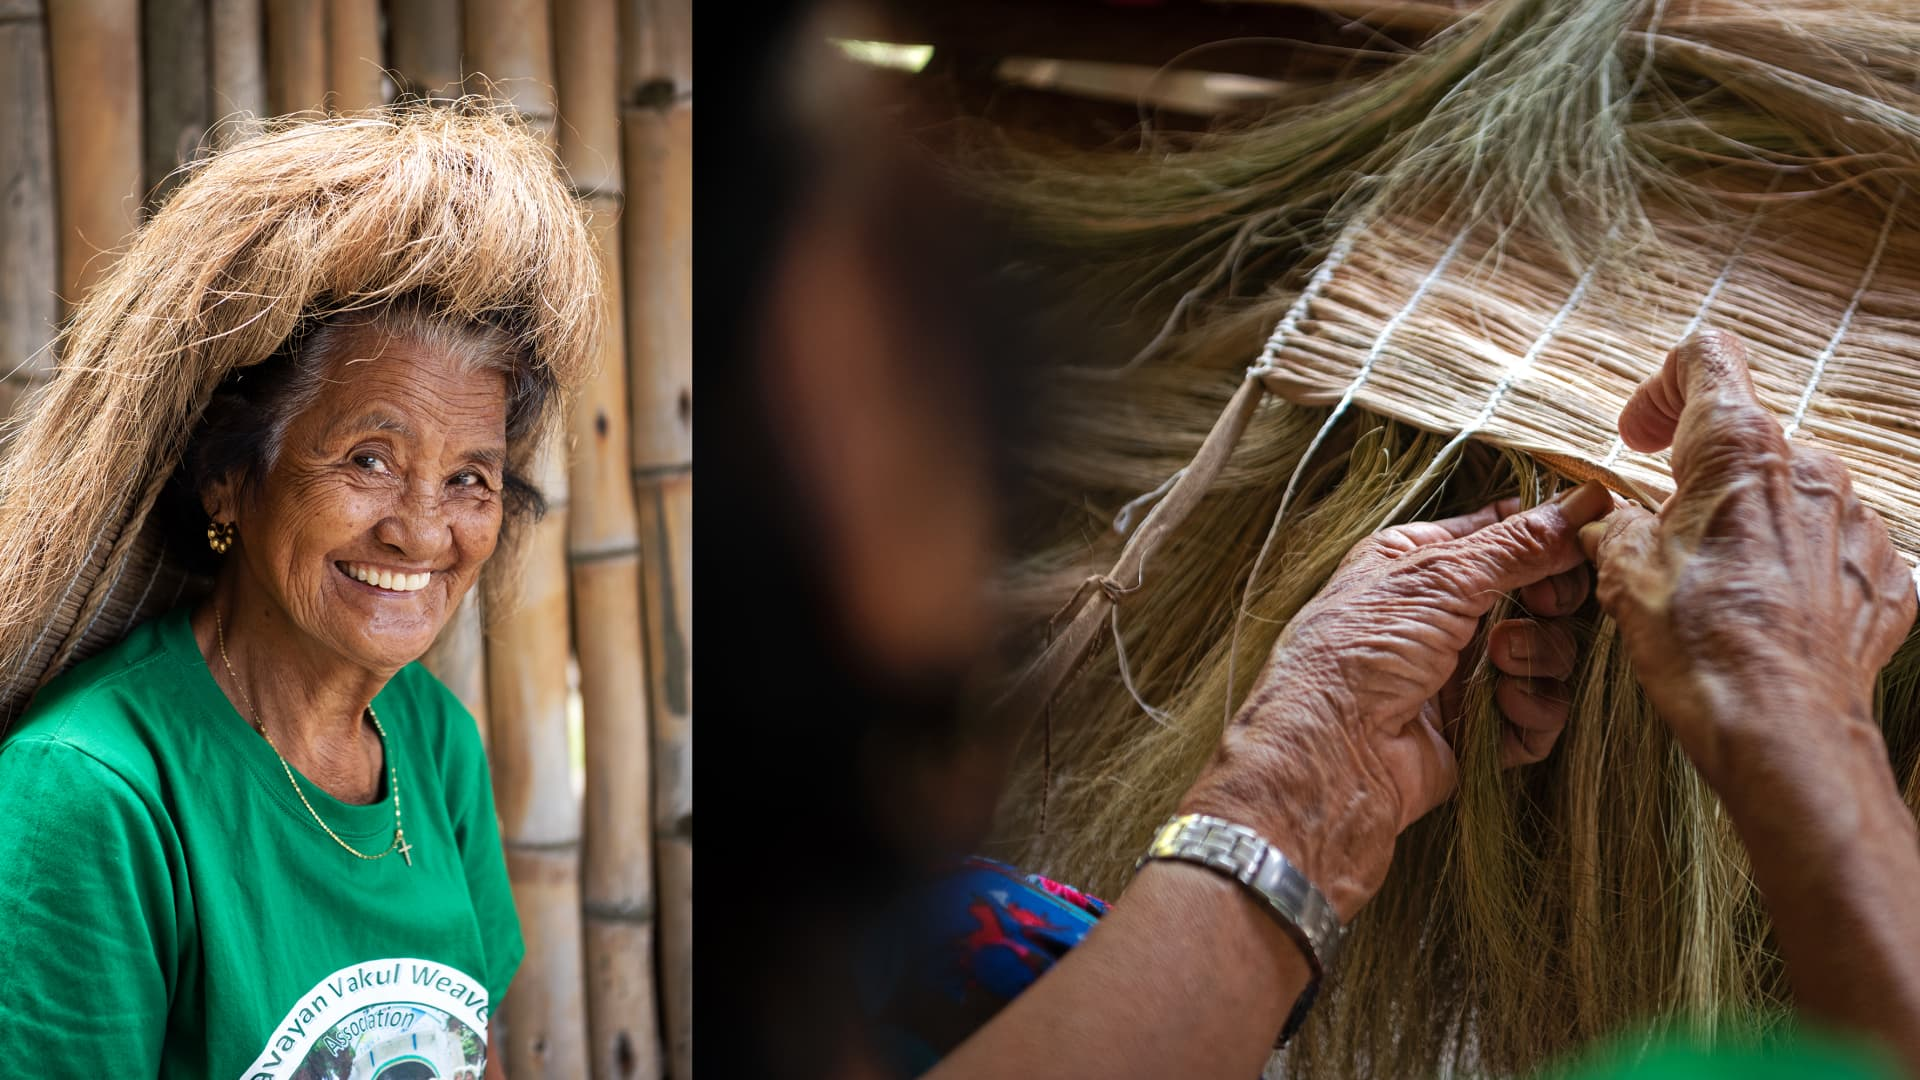 A woman in Chavayan wears a vakul made from hand-sewn palm fronds.